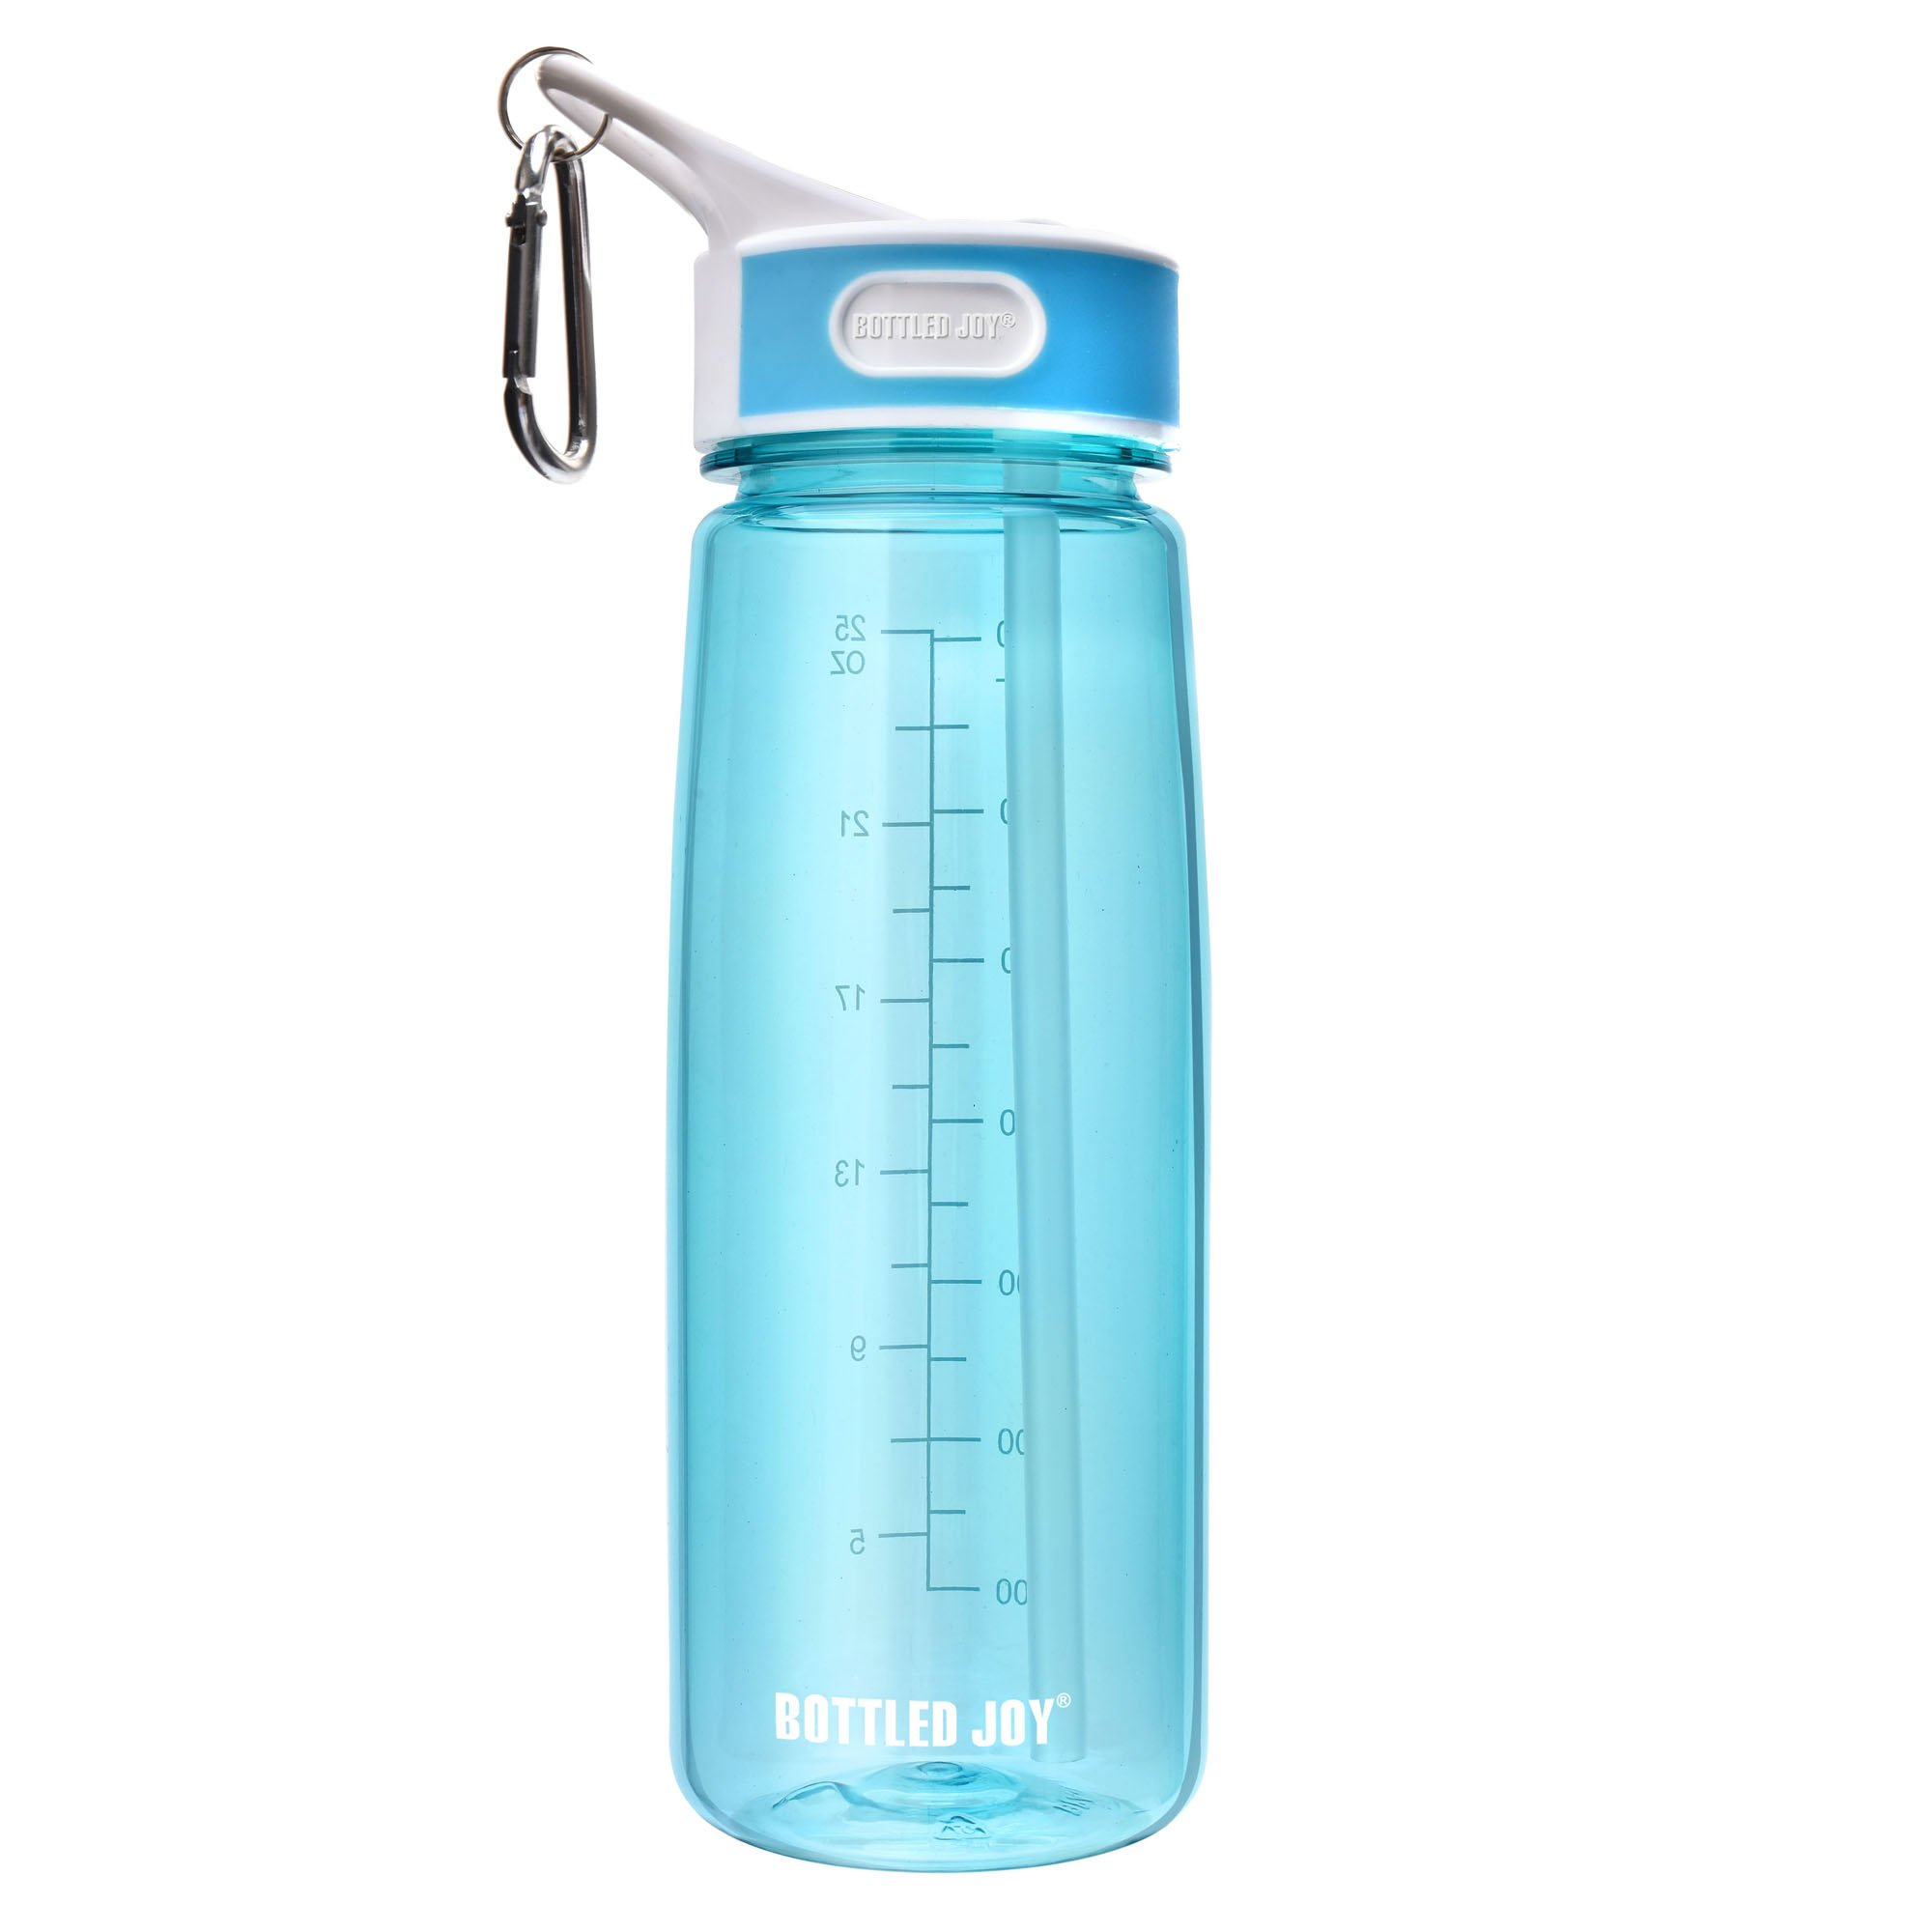 Water Bottle with Straw Leak Proof Drinking Bottle Tritan Material BPA-Free for Outdoor Sports Camping Hiking Cycling and More 28oz - Blue